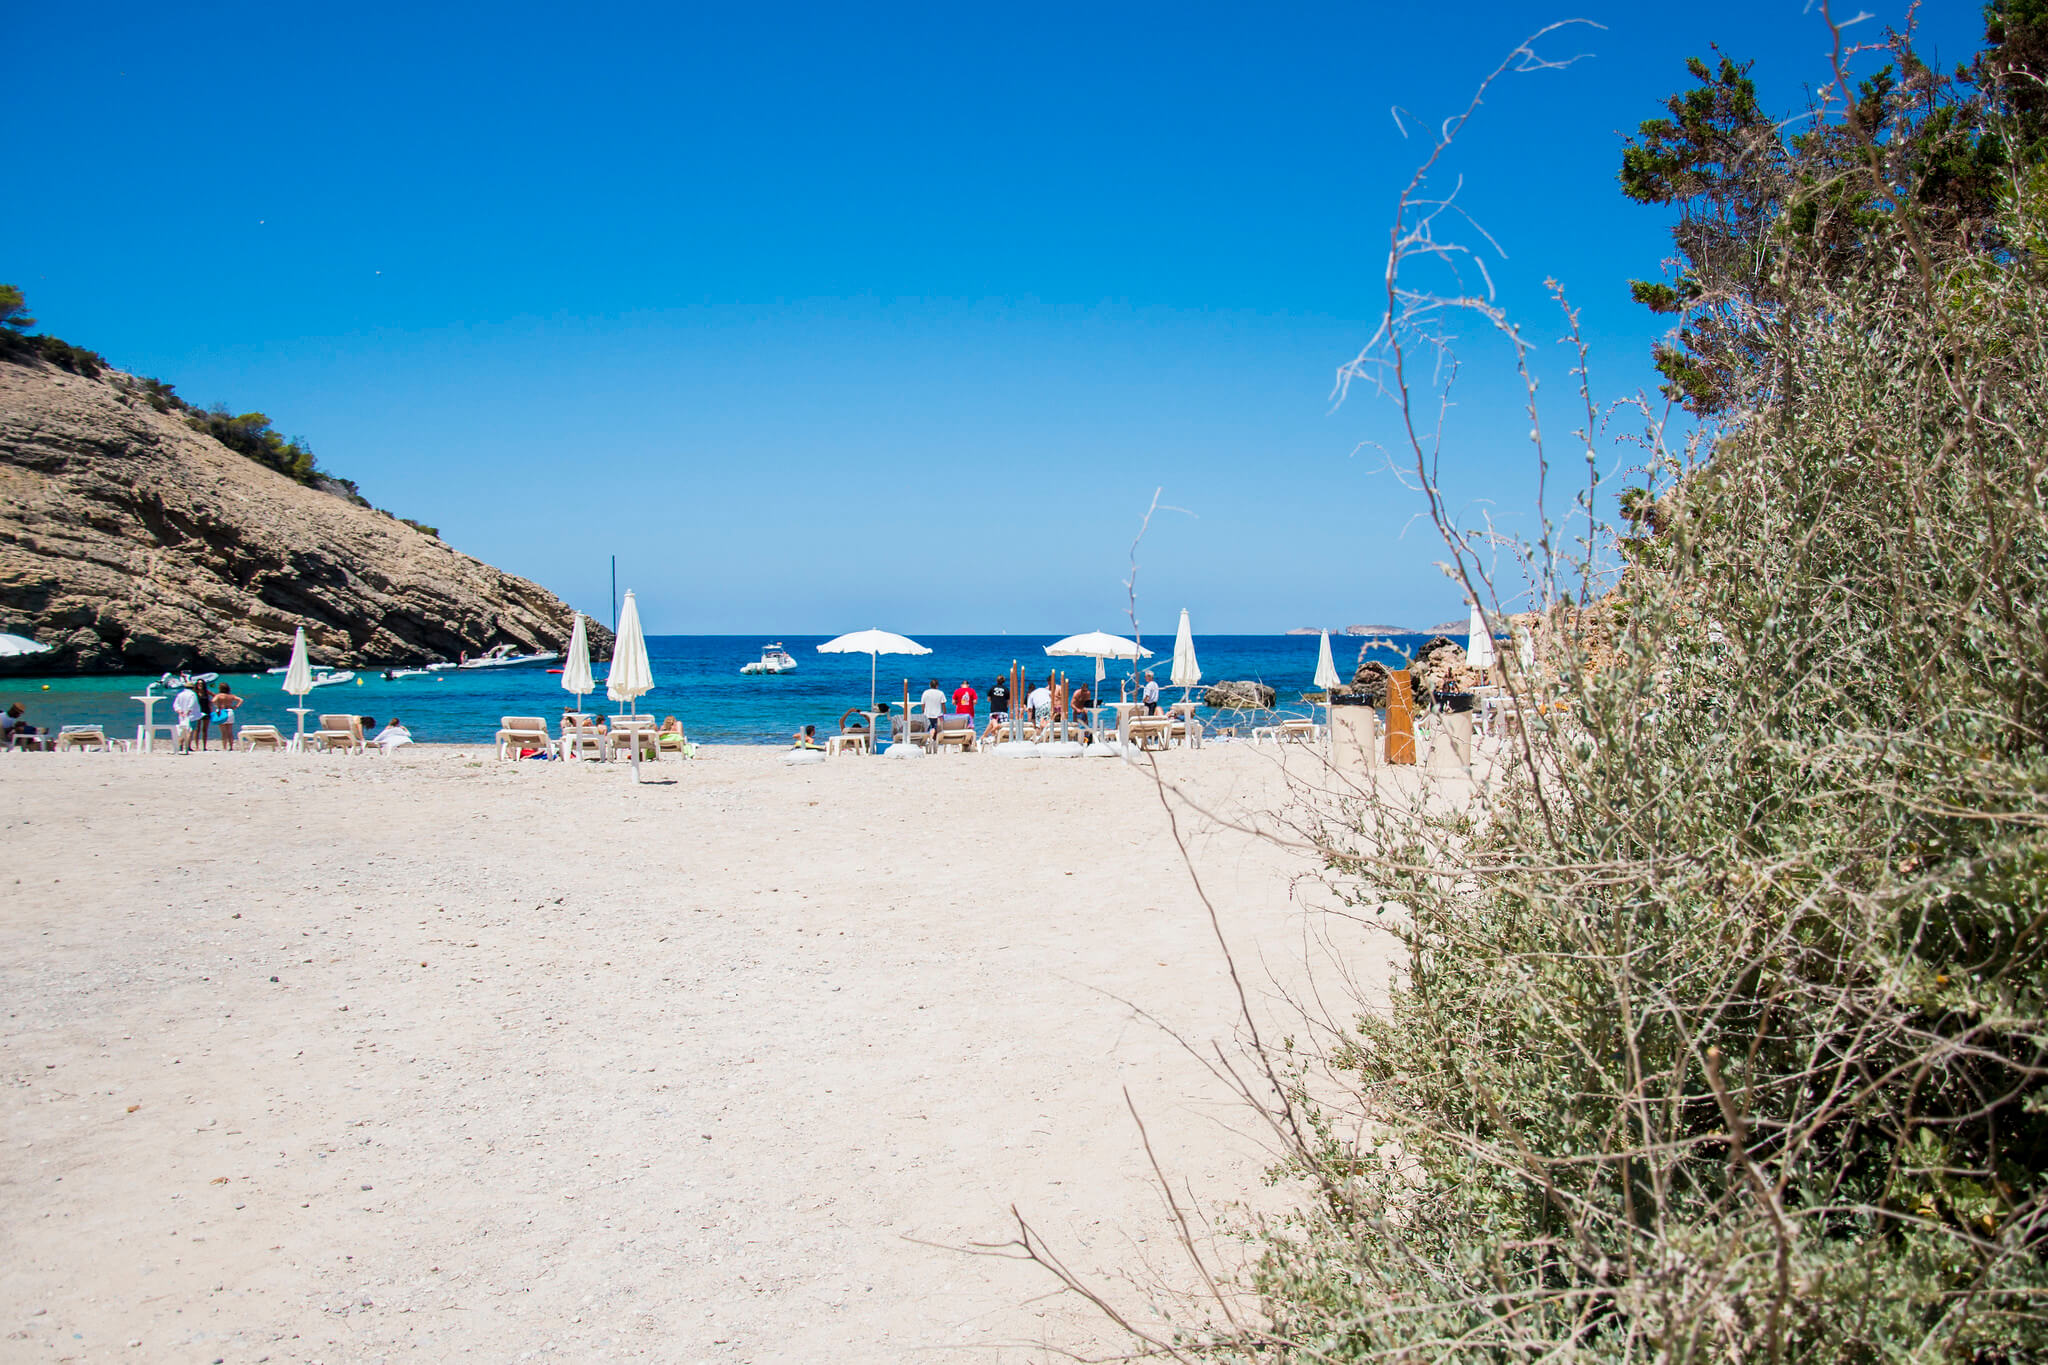 https://www.white-ibiza.com/wp-content/uploads/2020/03/ibiza-beaches-cala-moli-02.jpg